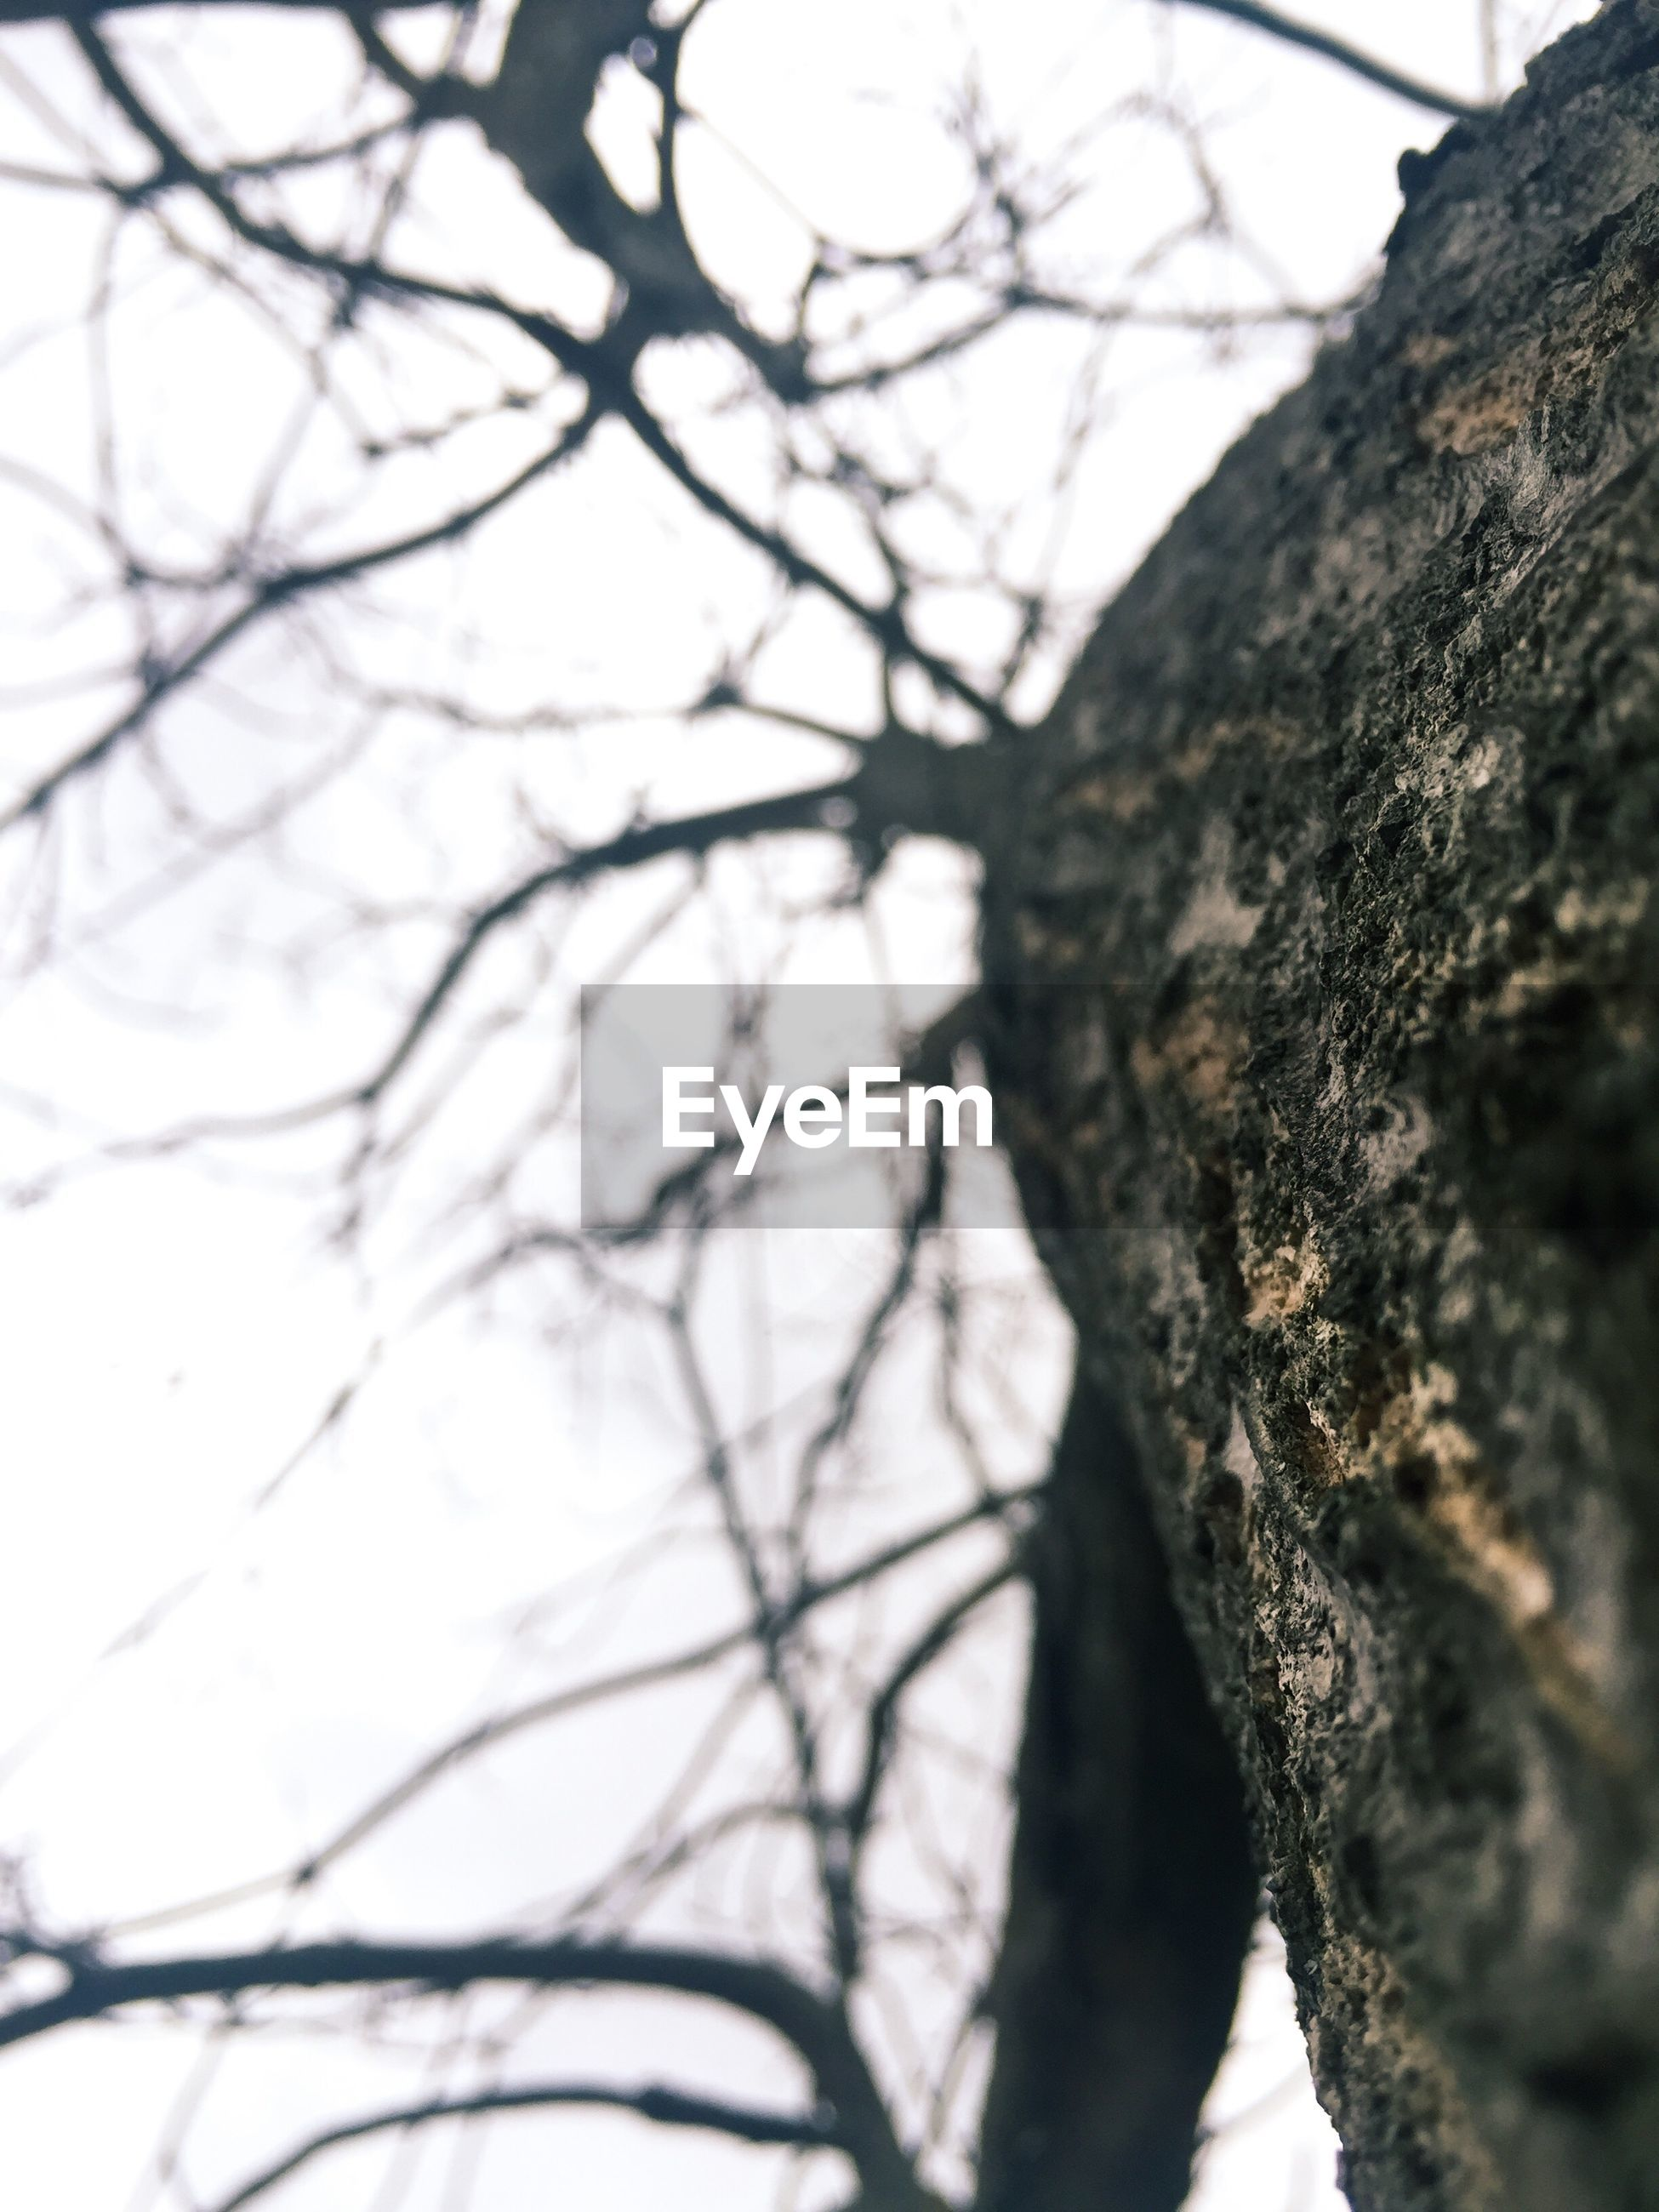 branch, tree, tree trunk, bare tree, focus on foreground, nature, close-up, low angle view, selective focus, tranquility, outdoors, day, bark, textured, no people, growth, beauty in nature, clear sky, twig, wood - material